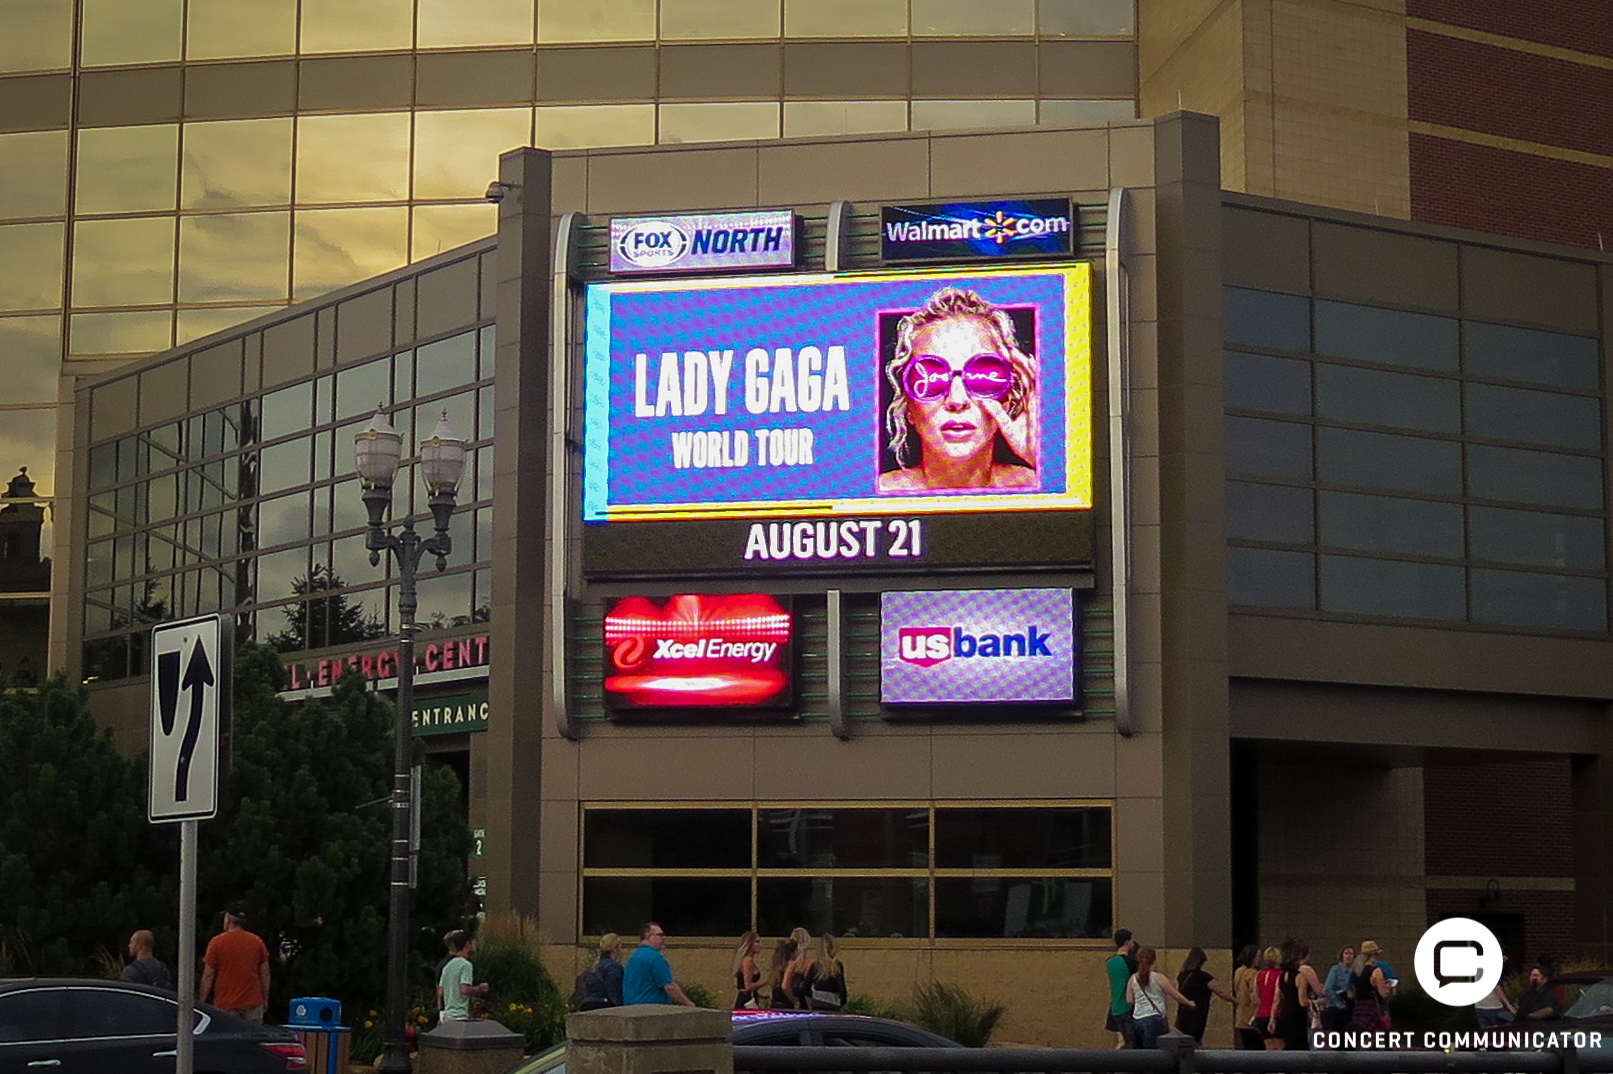 Lady Gaga @ Xcel Energy Center